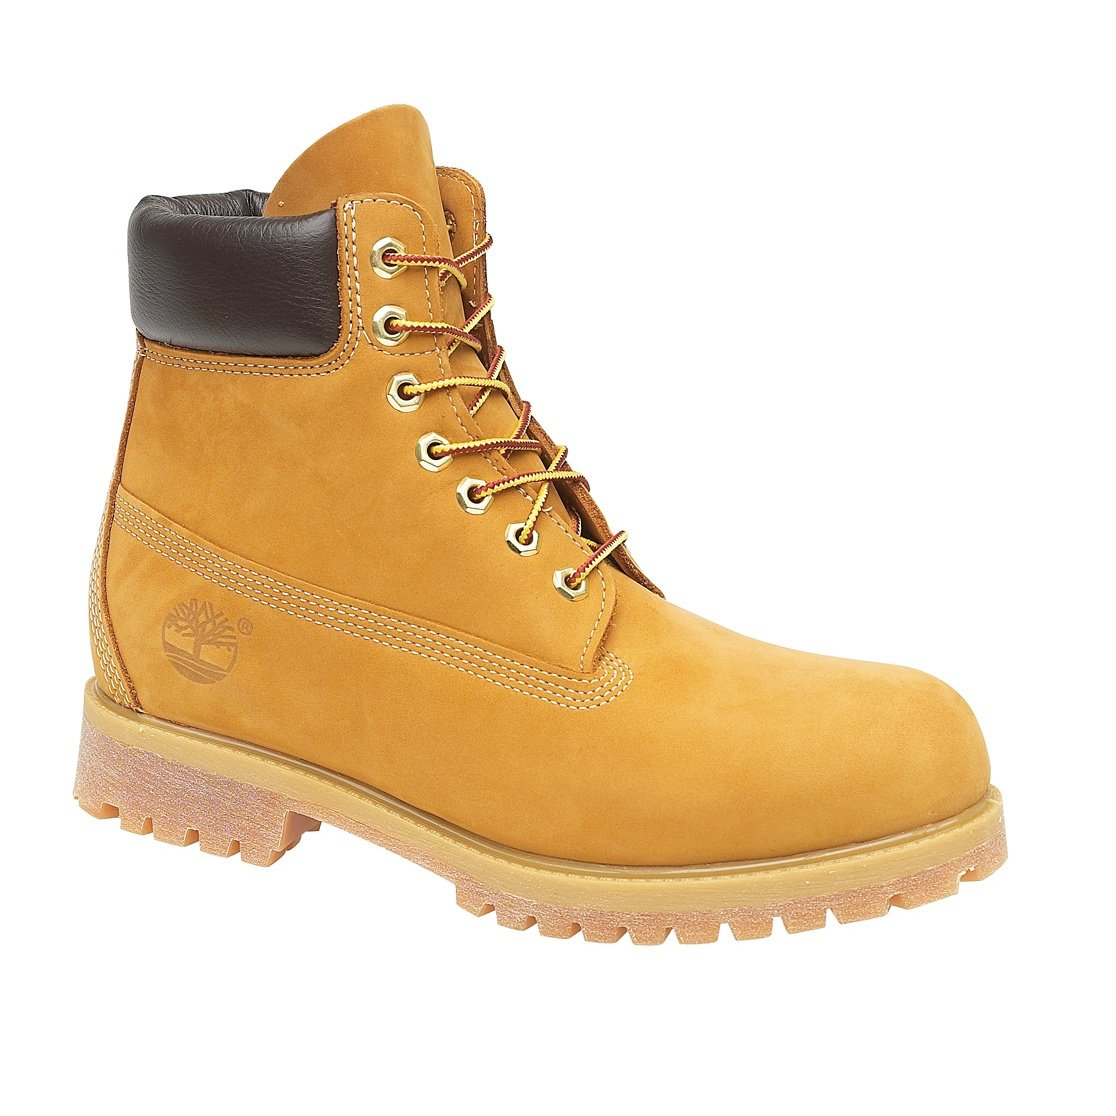 64941fb6d53 Timberland Logo On Boots